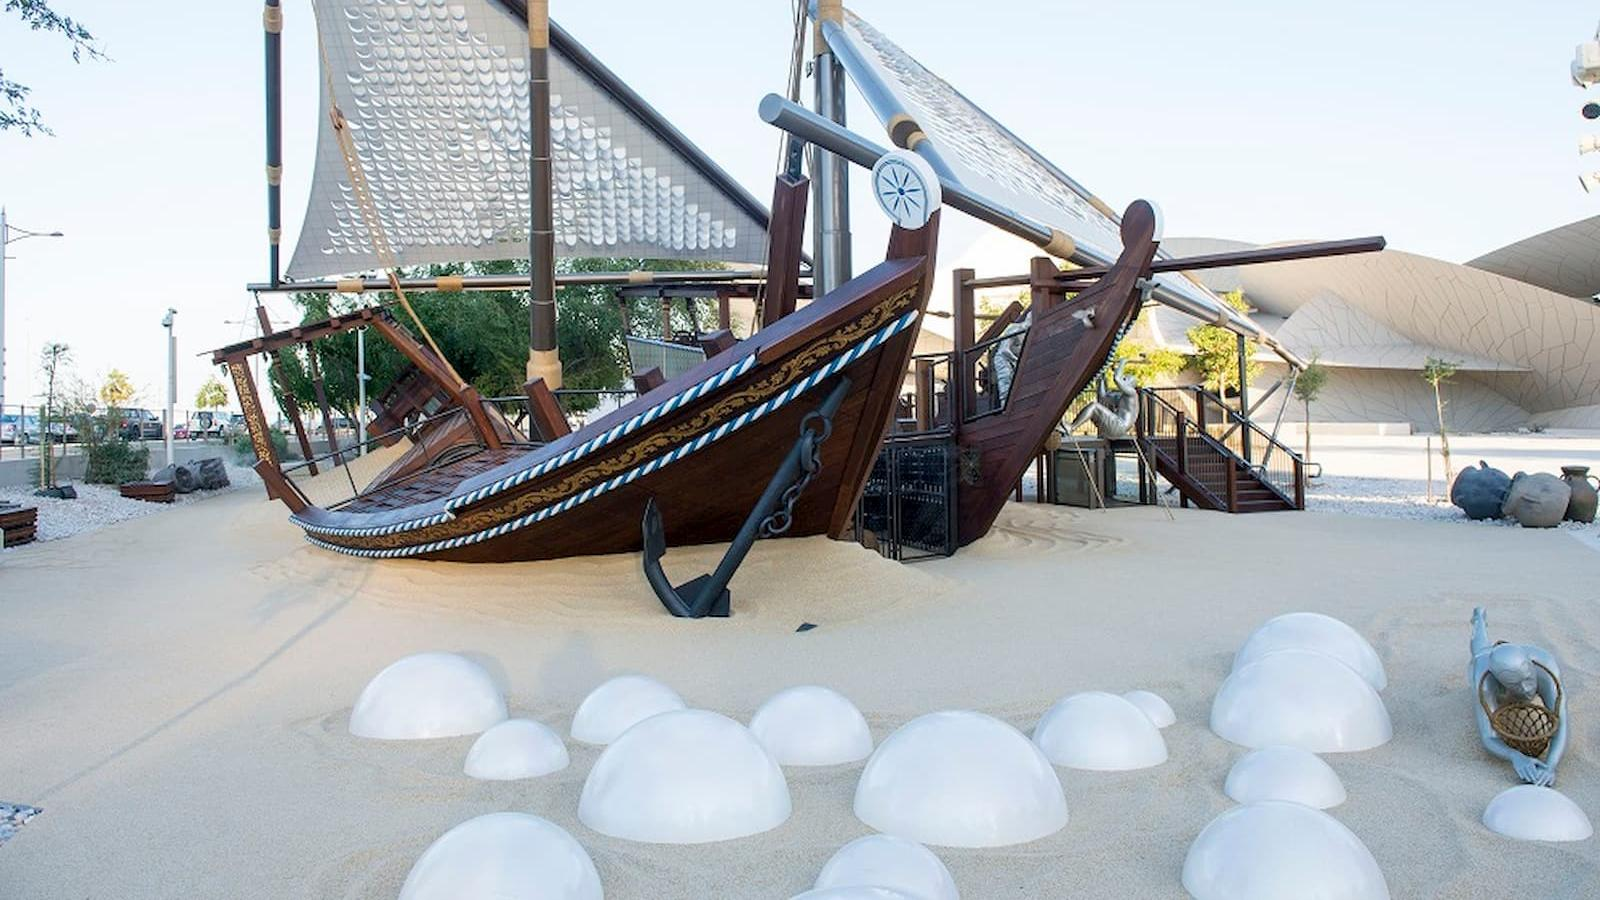 Two new playgrounds to open at NMoQ this Saturday